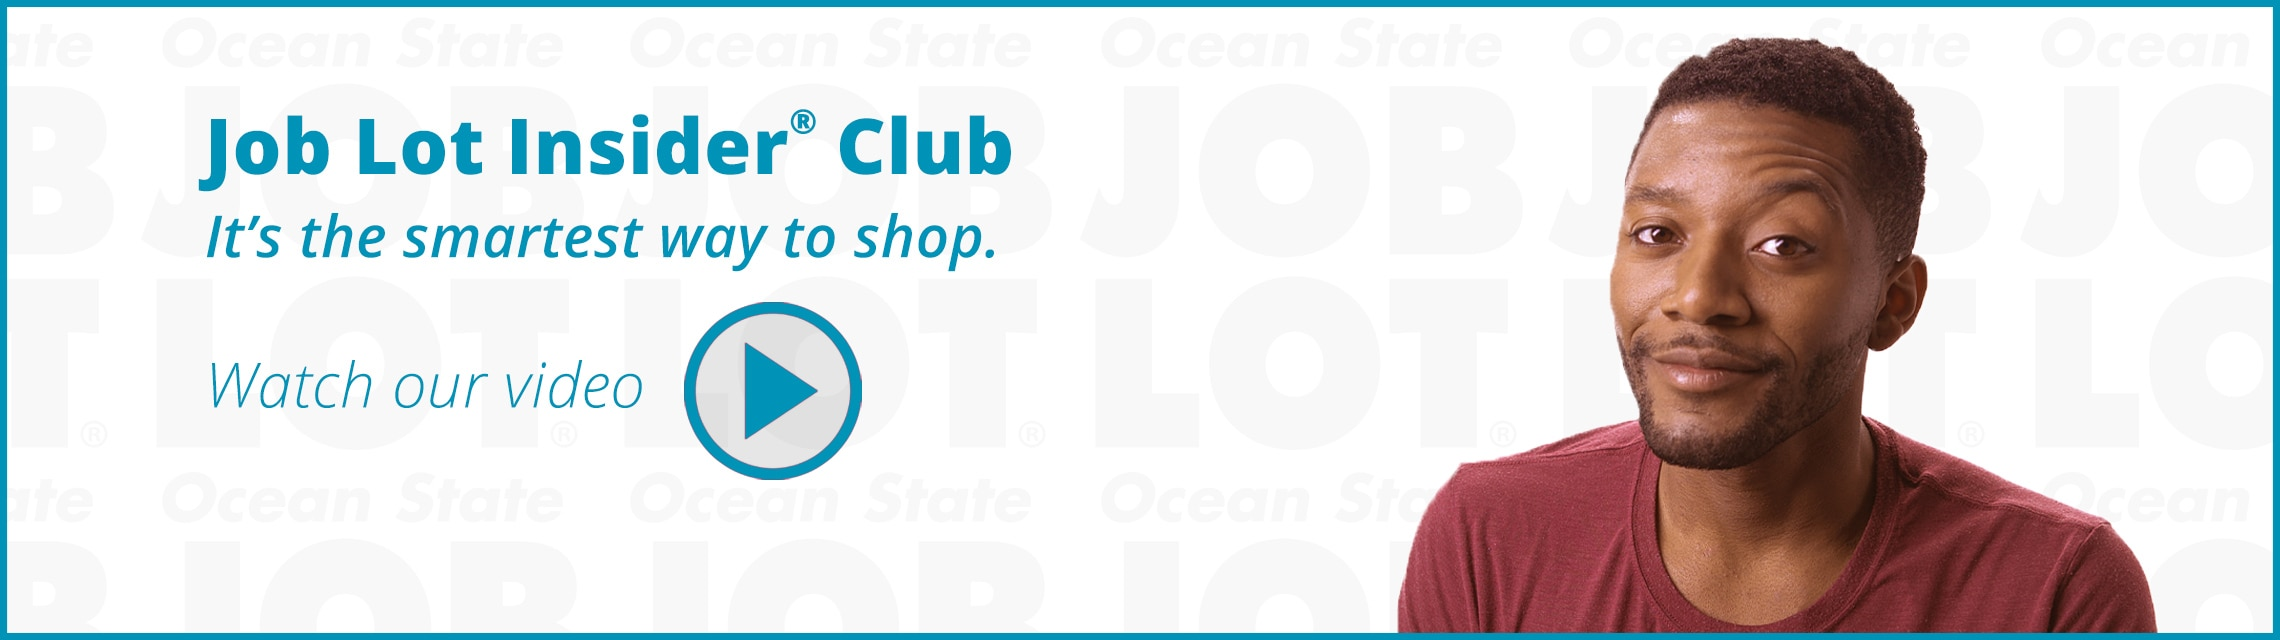 graphic regarding Ocean State Job Lots Coupons Printable referred to as Insider Club